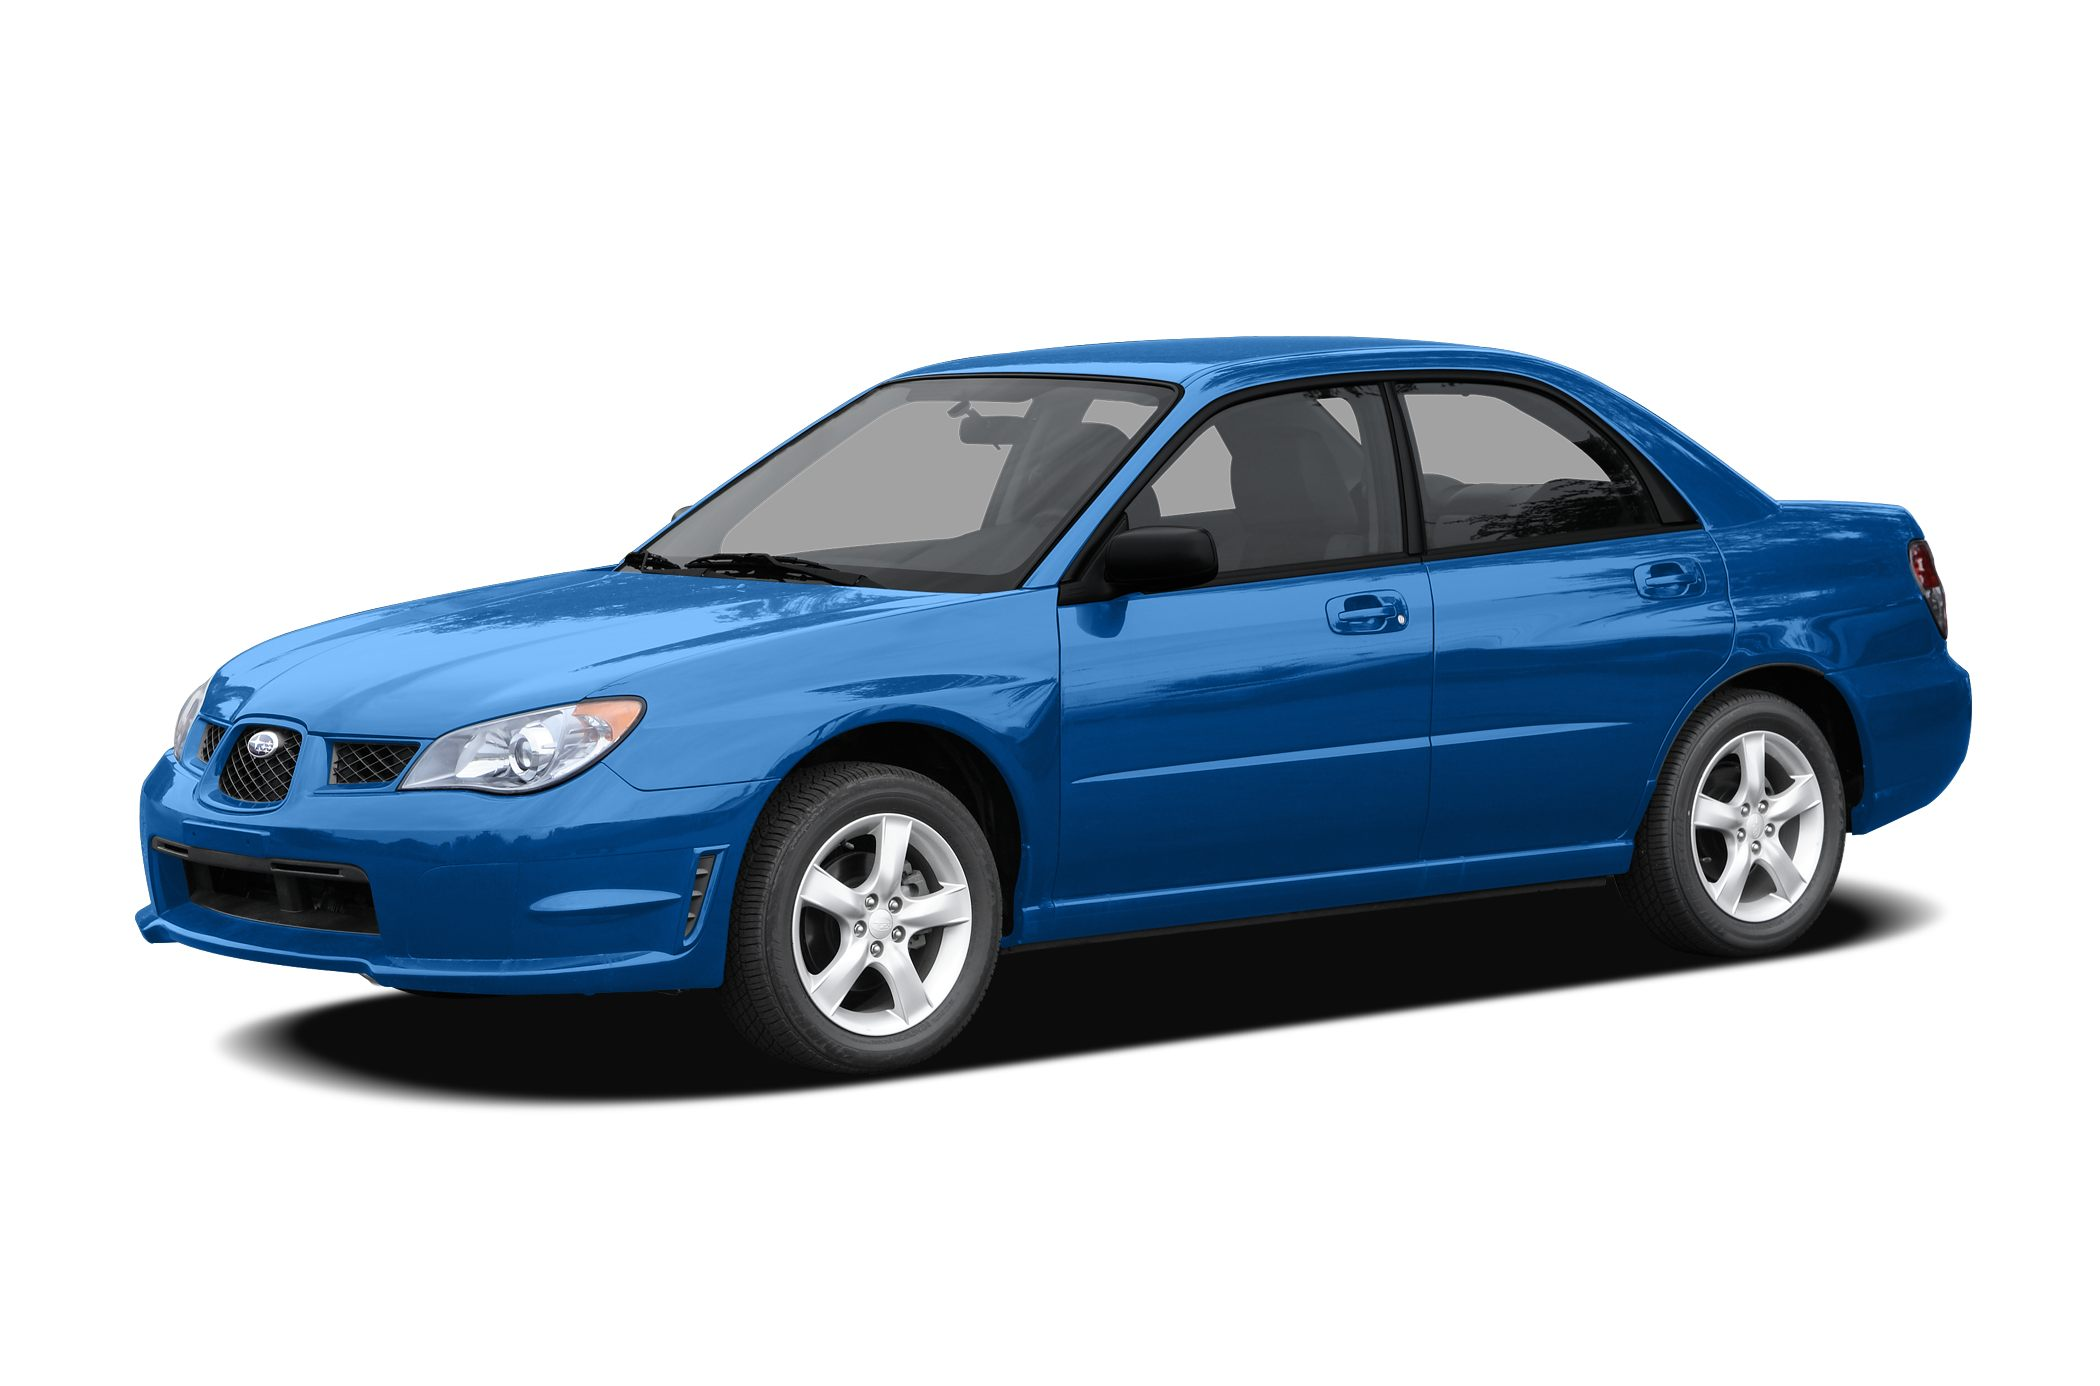 CAB70SUC041A0101 Take A Look About 2002 Subaru Impreza Wrx Specs